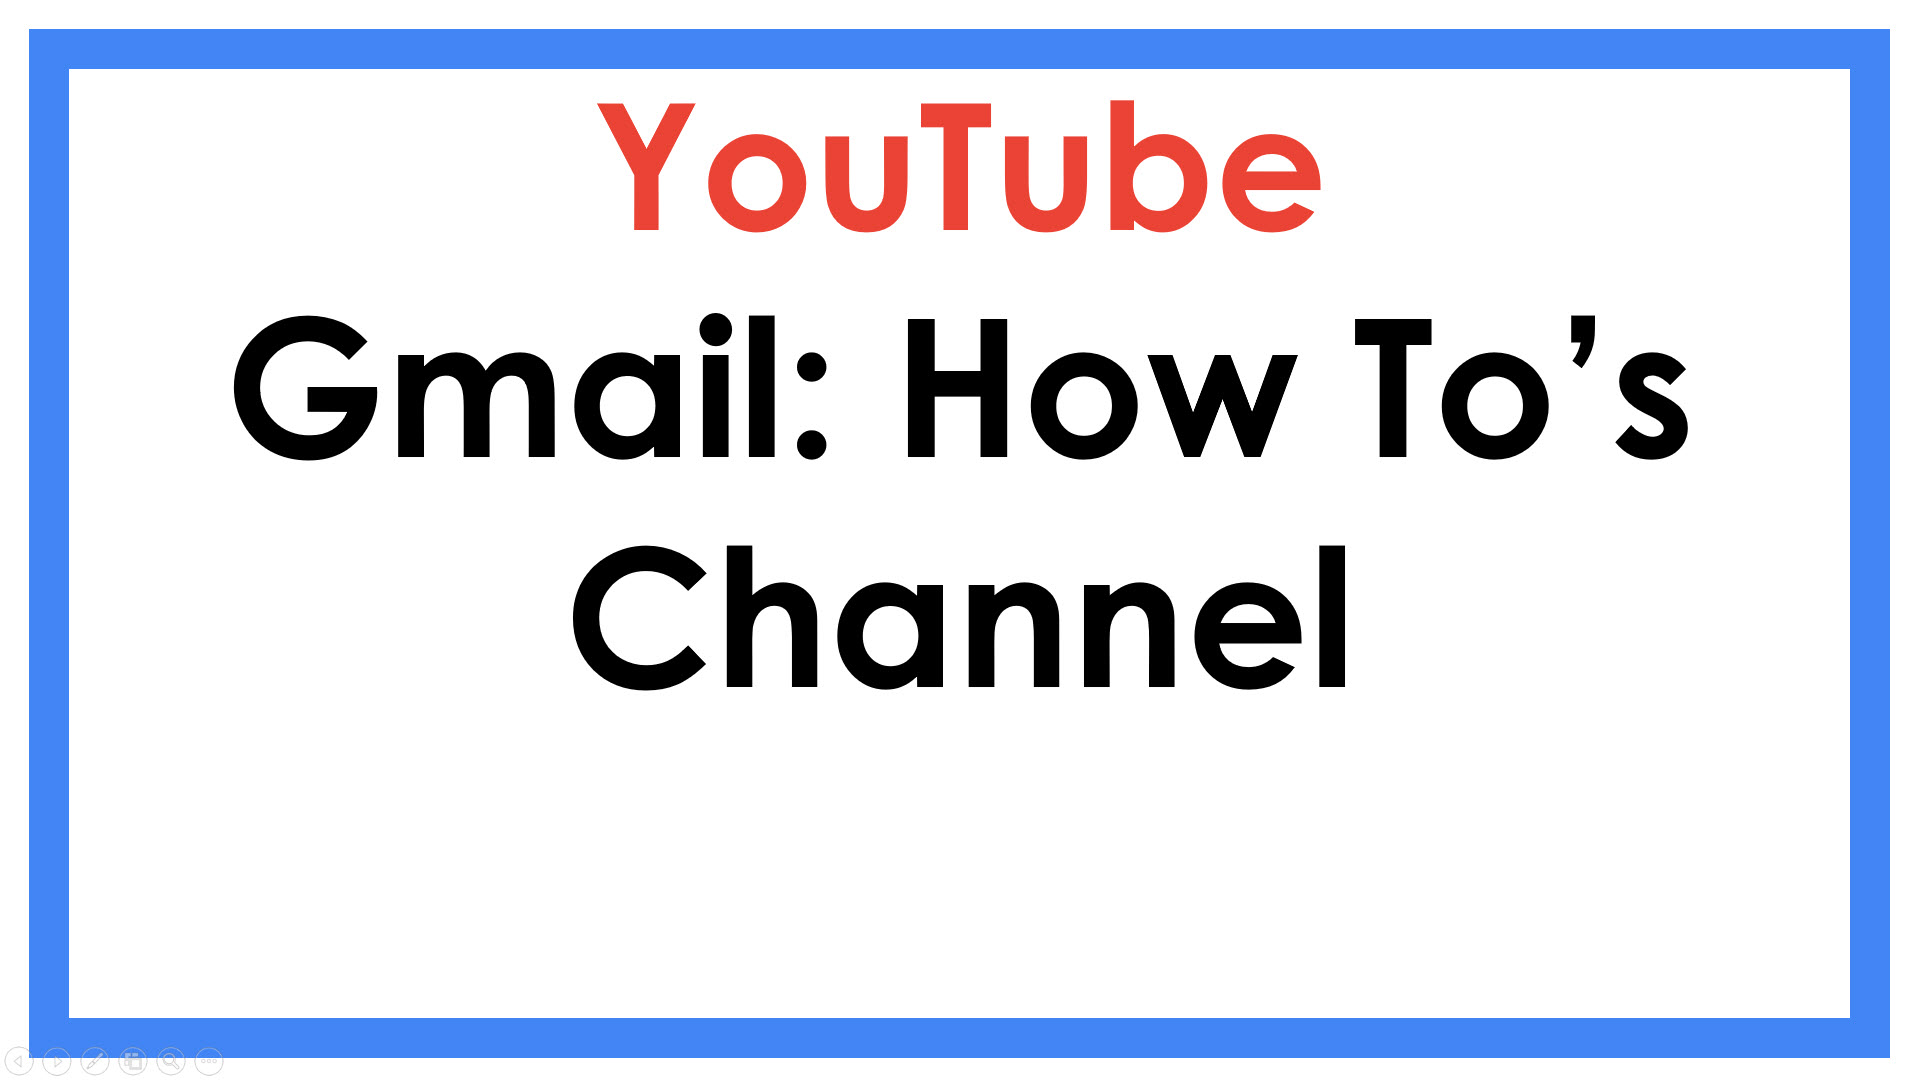 Gmail YouTube Channel